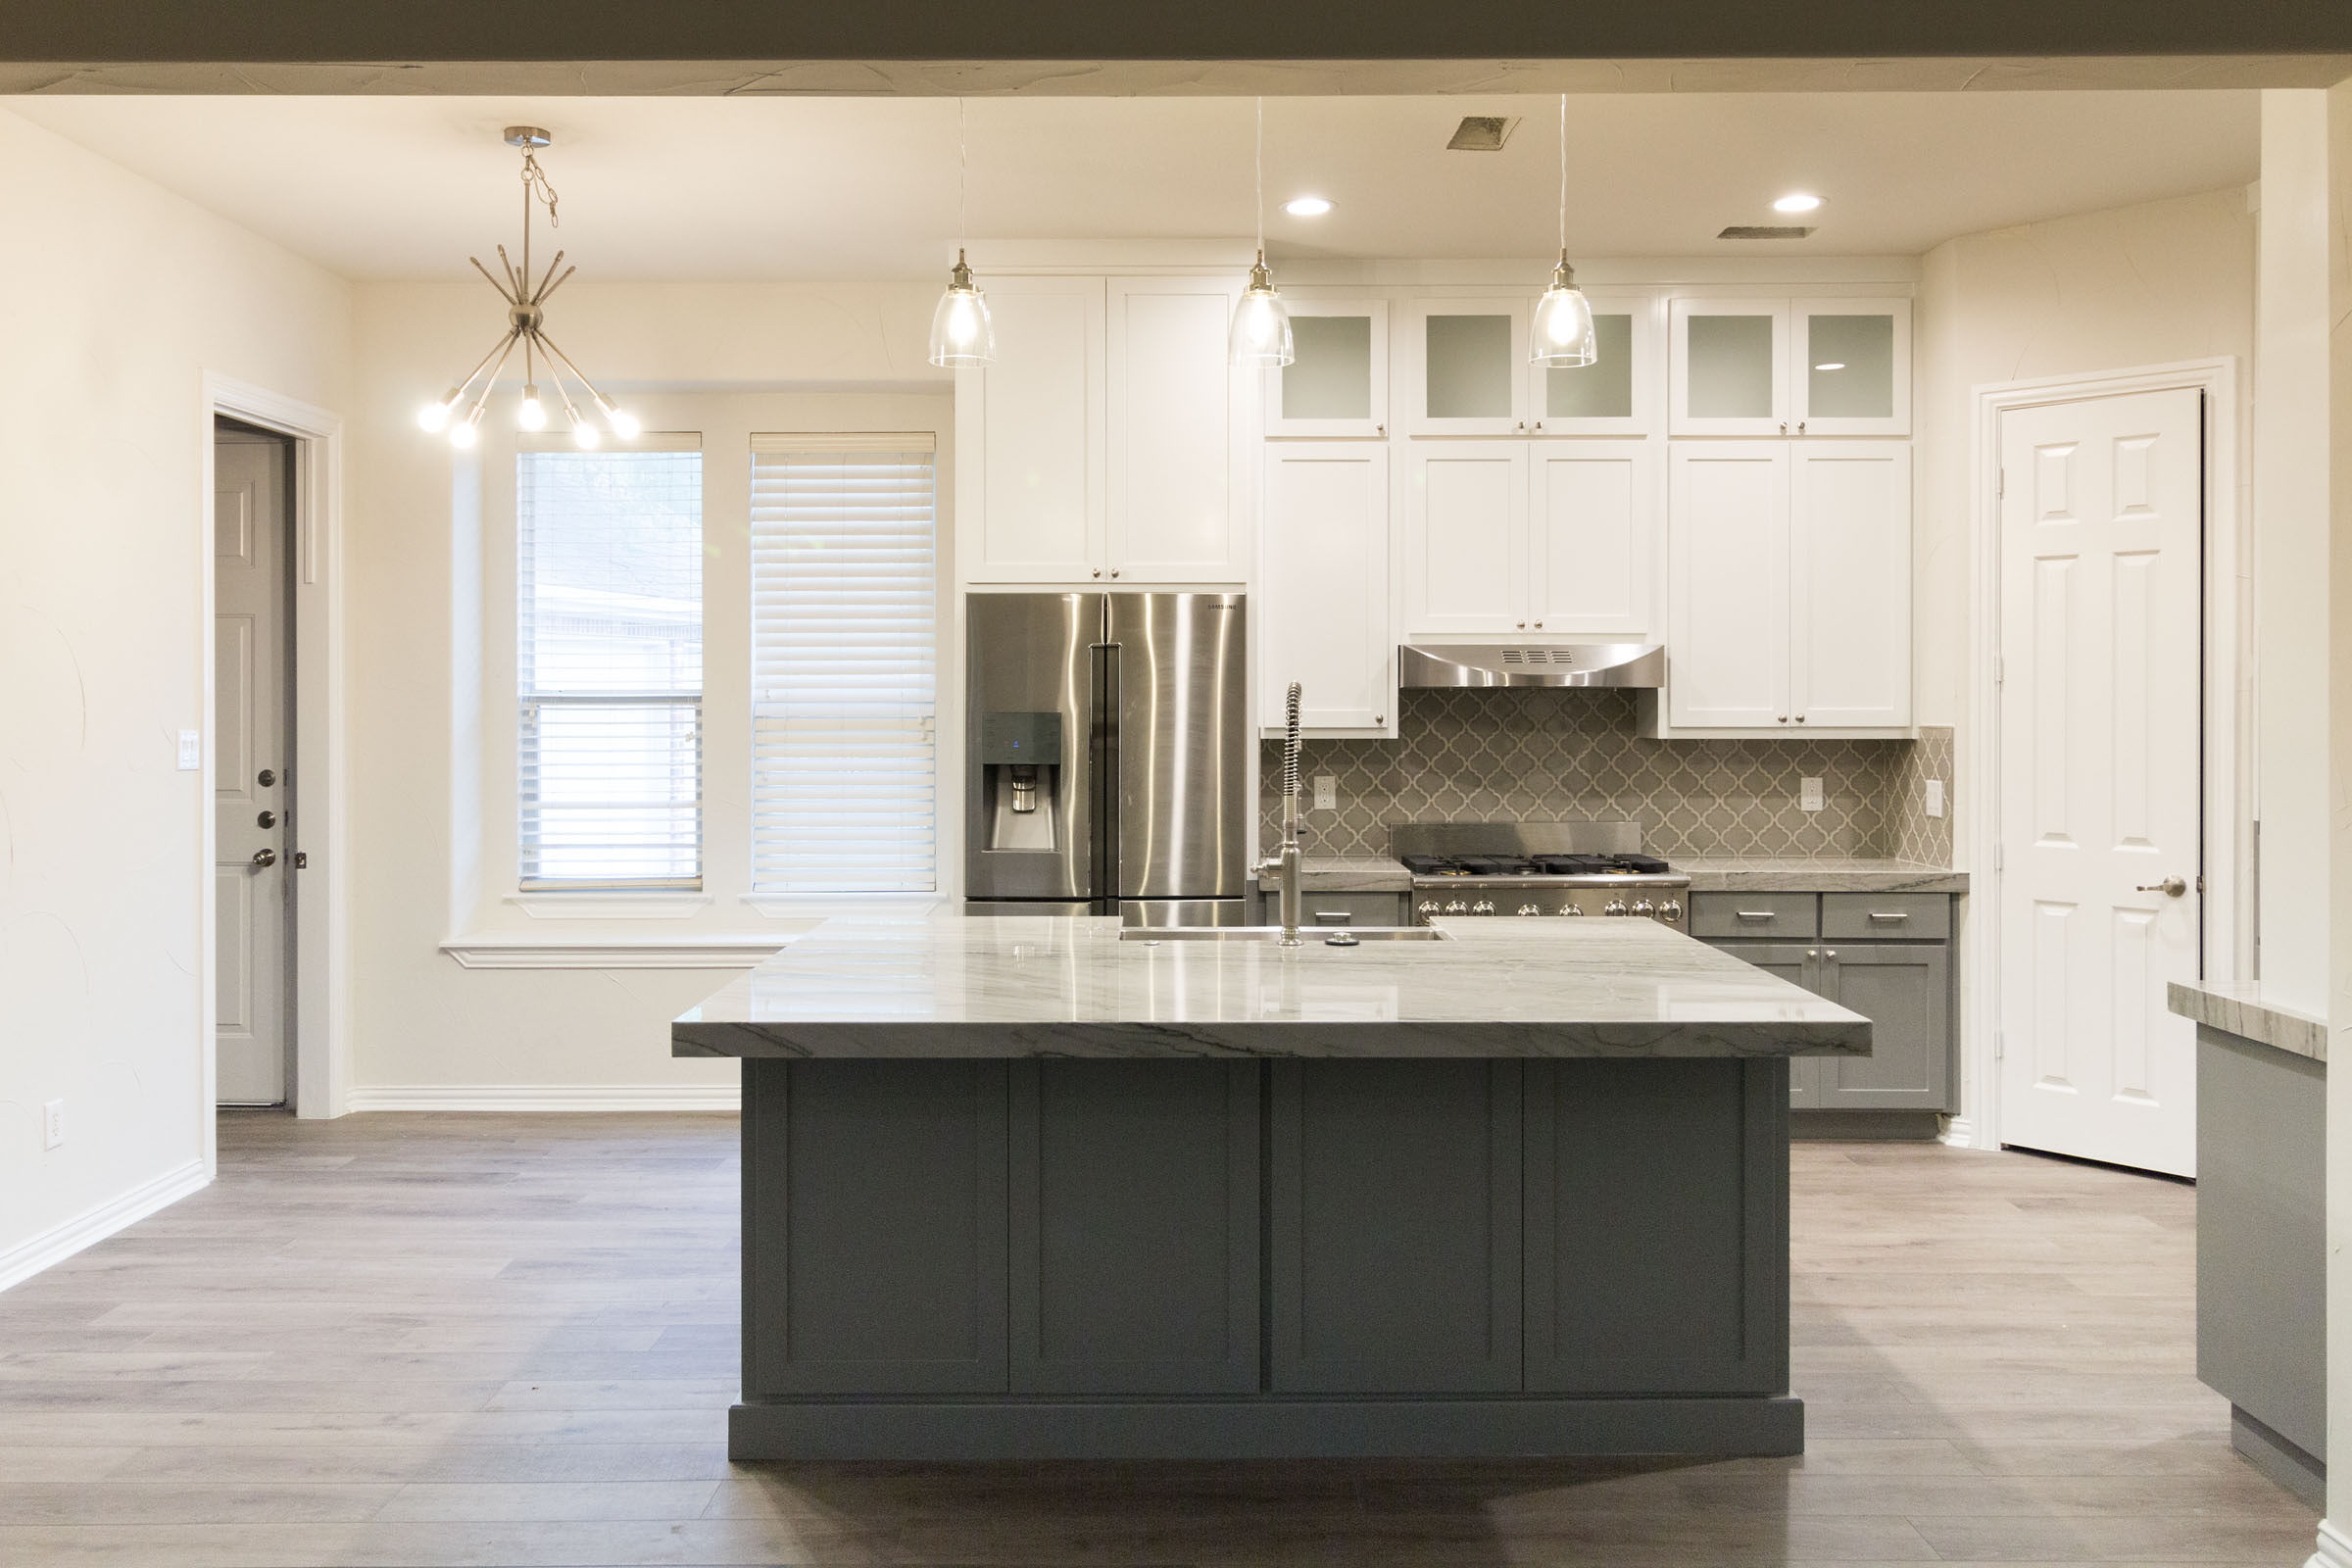 Wide angle shot of Contemporary kitchen remodel, grey and white, shaker cabinets, stainless steel, farmhouse sink, open floor plan